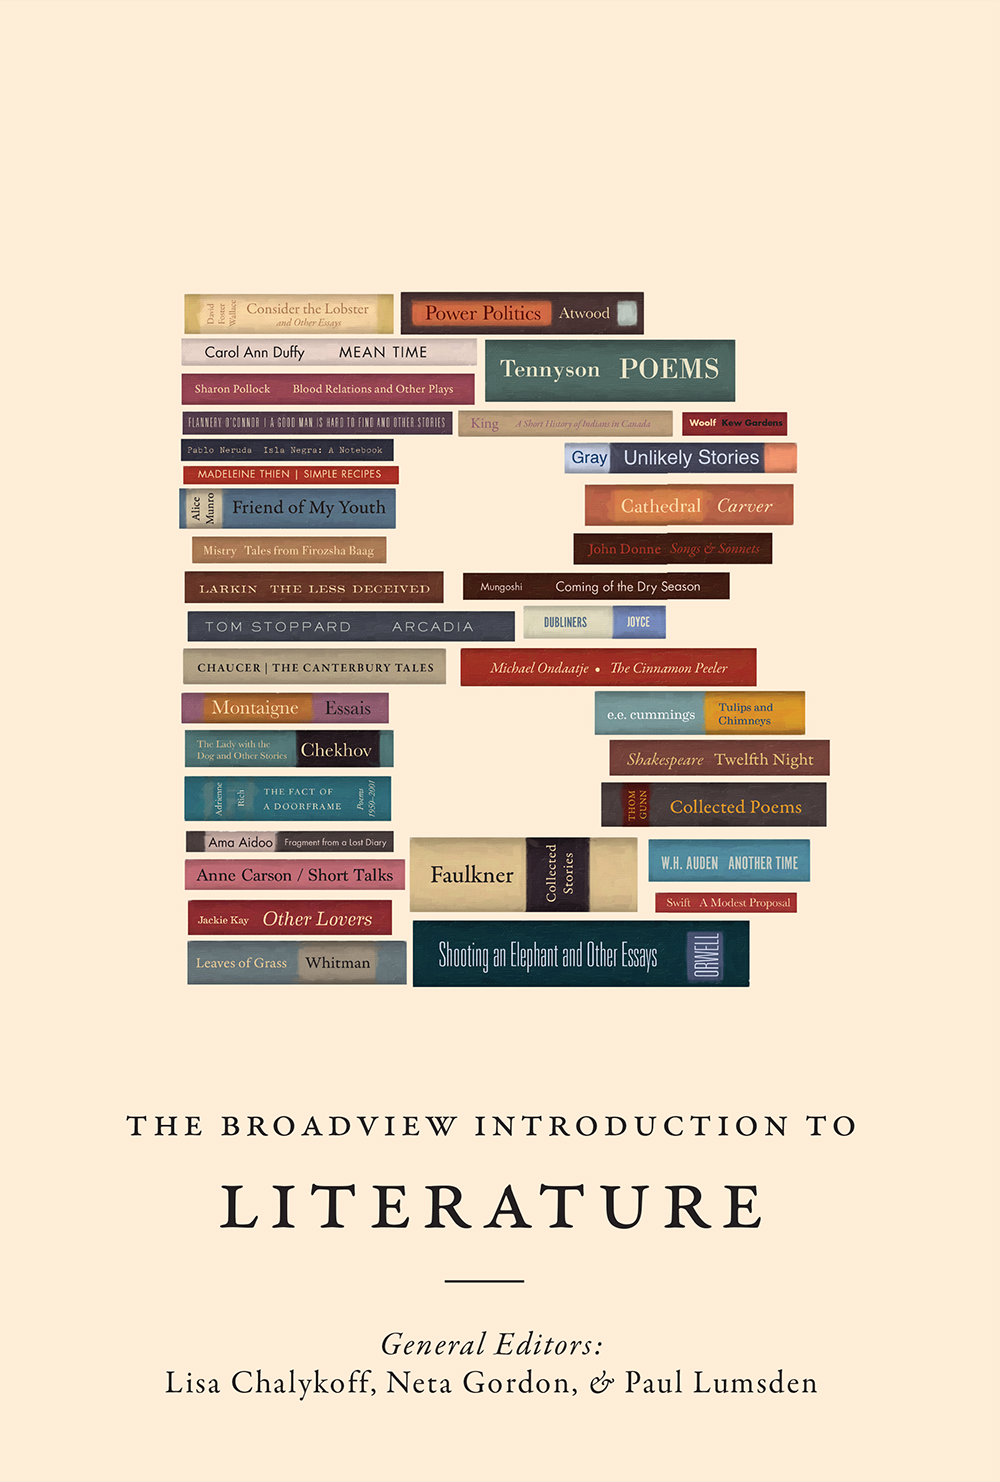 The Broadview Introduction To Literature; Series Design By Michel Vrana  (broadview August 2013)